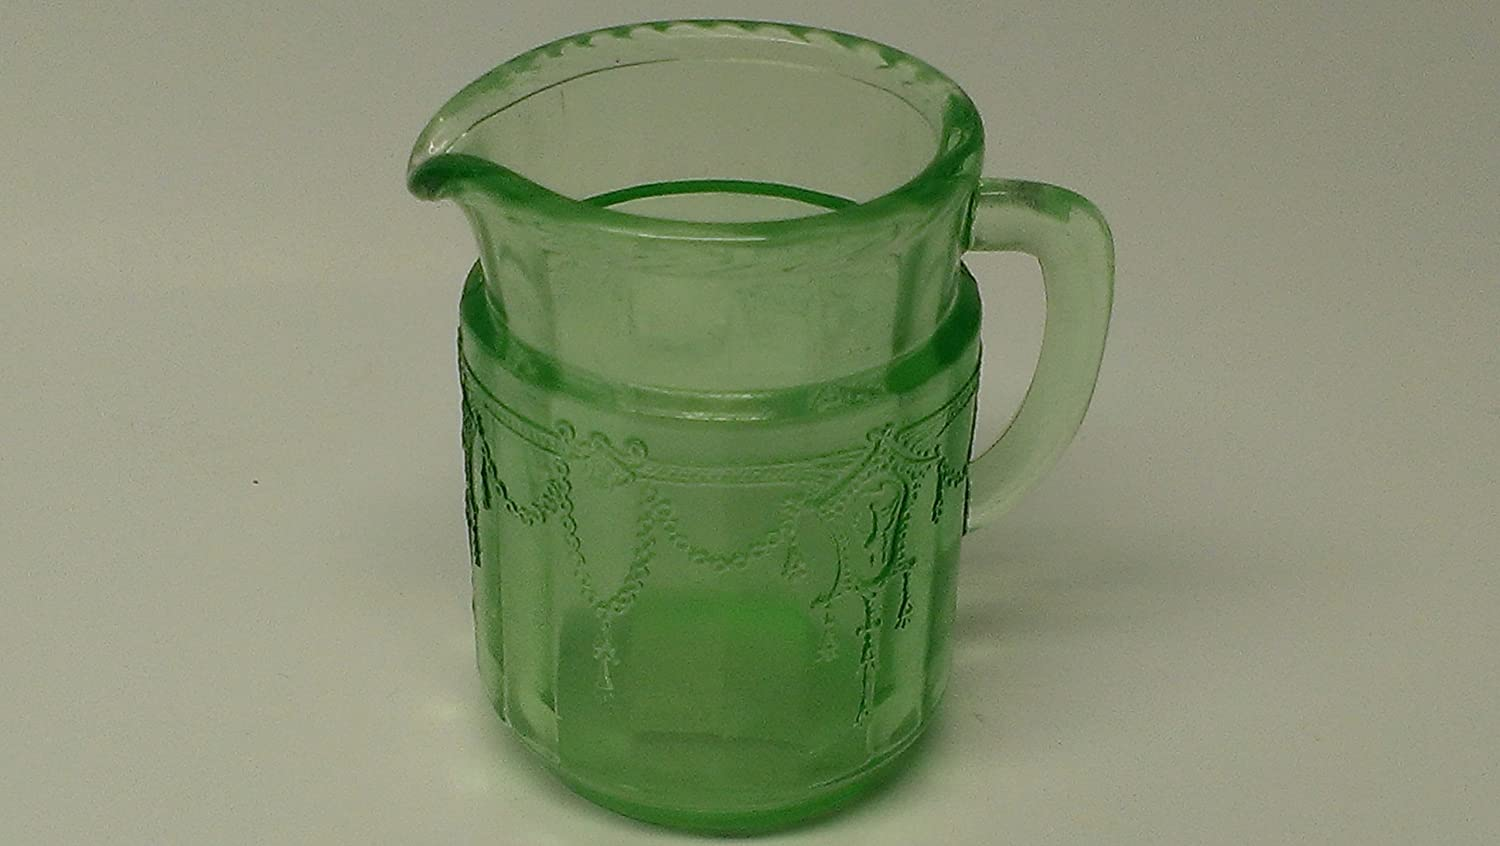 Miniature Childs Size Green Glass Beverage Pitcher Cameo Ballerina